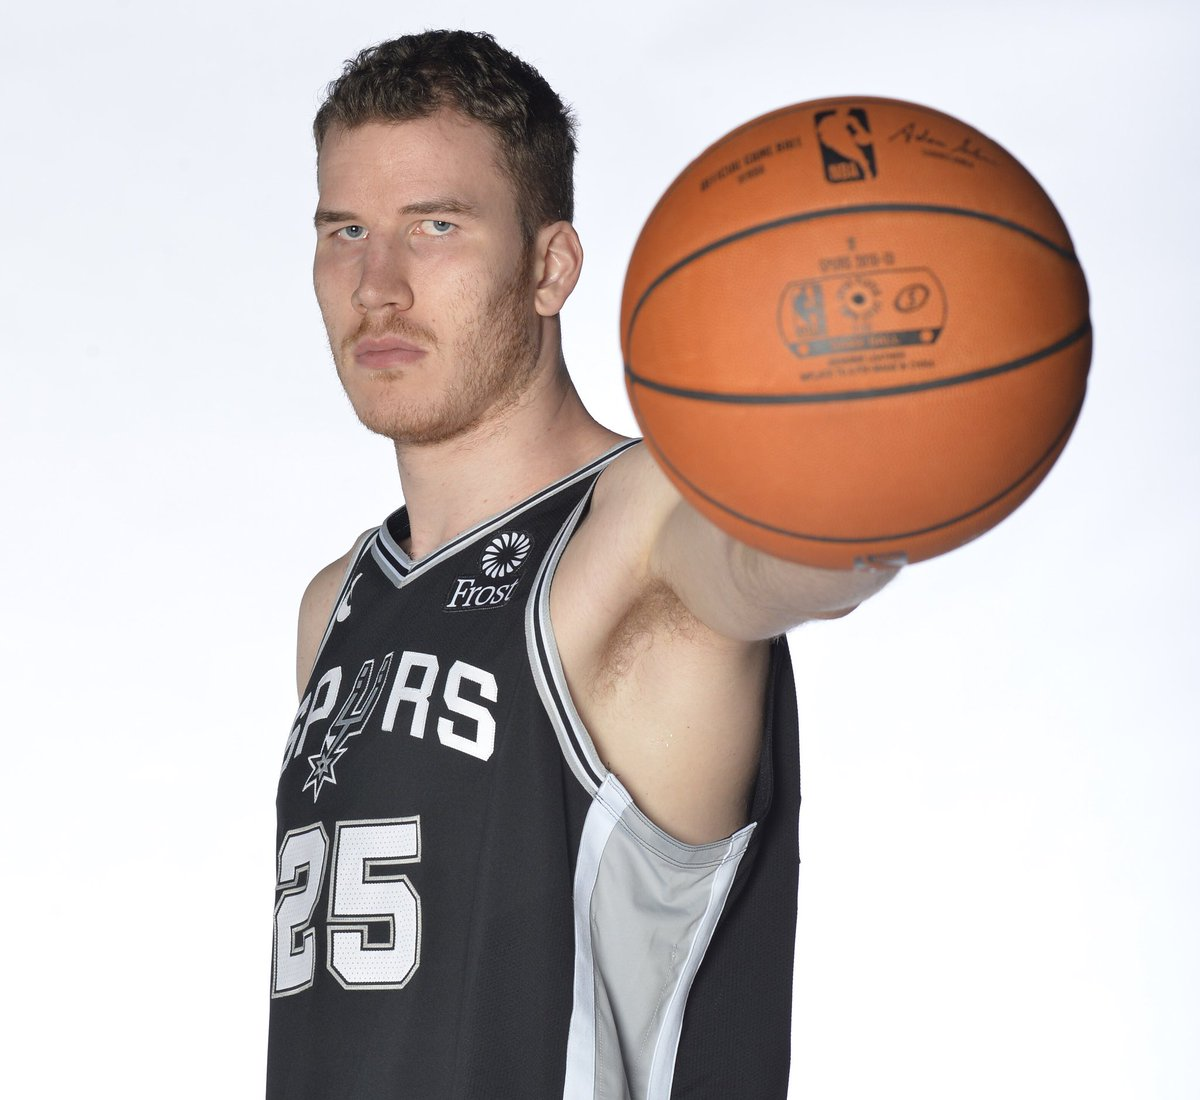 Join us in wishing Jakob Poeltl of the @spurs a HAPPY 23rd BIRTHDAY! #NBABDAY